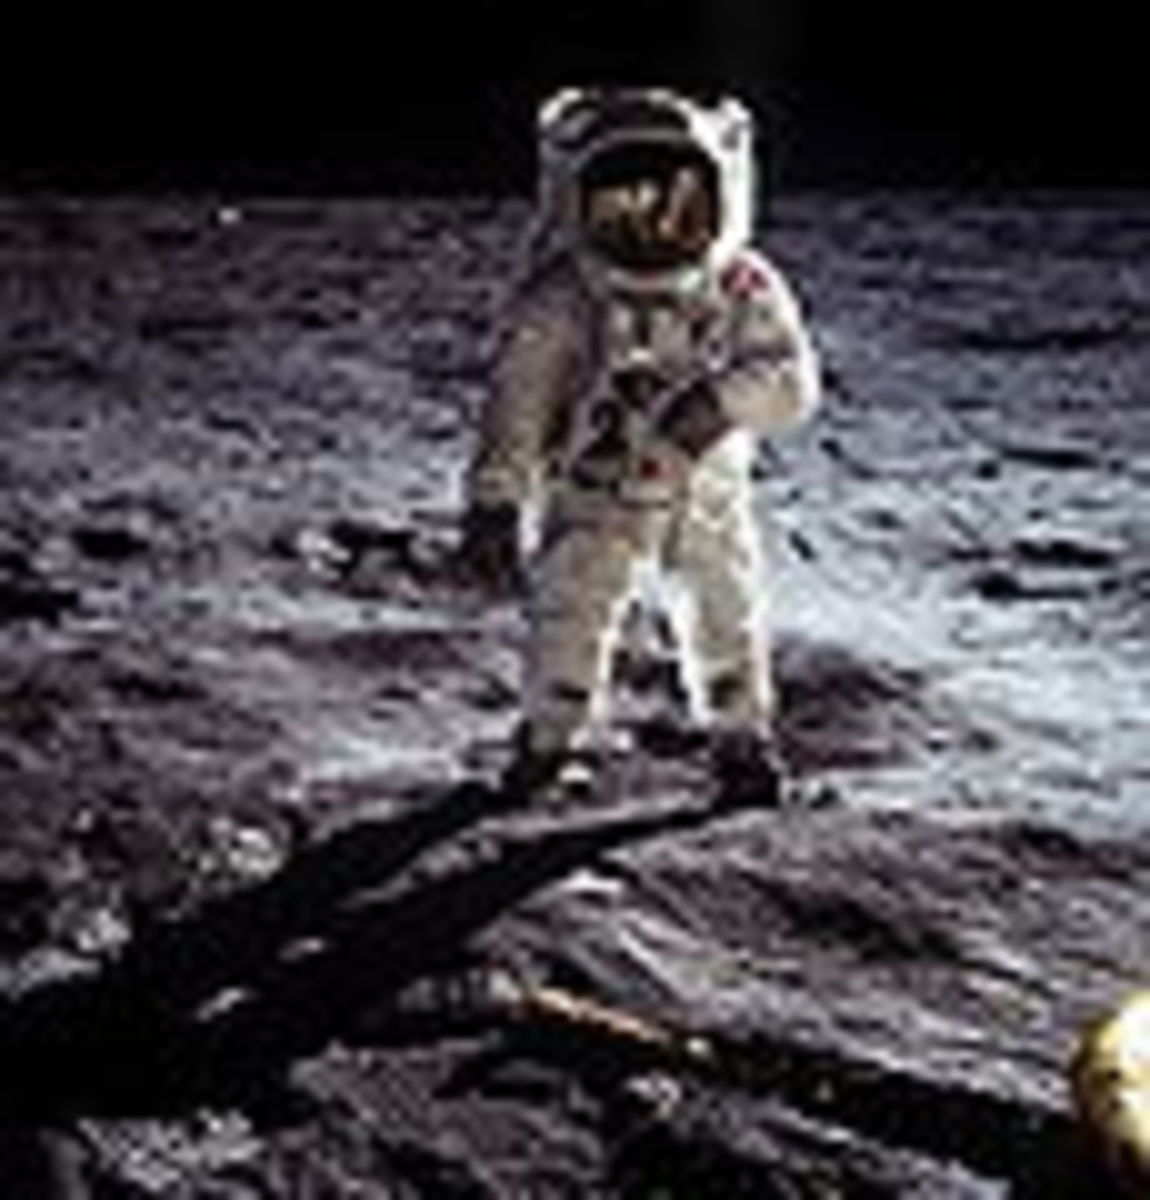 Buzz Aldrin on the Sea of Tranquility, not a soundstage!